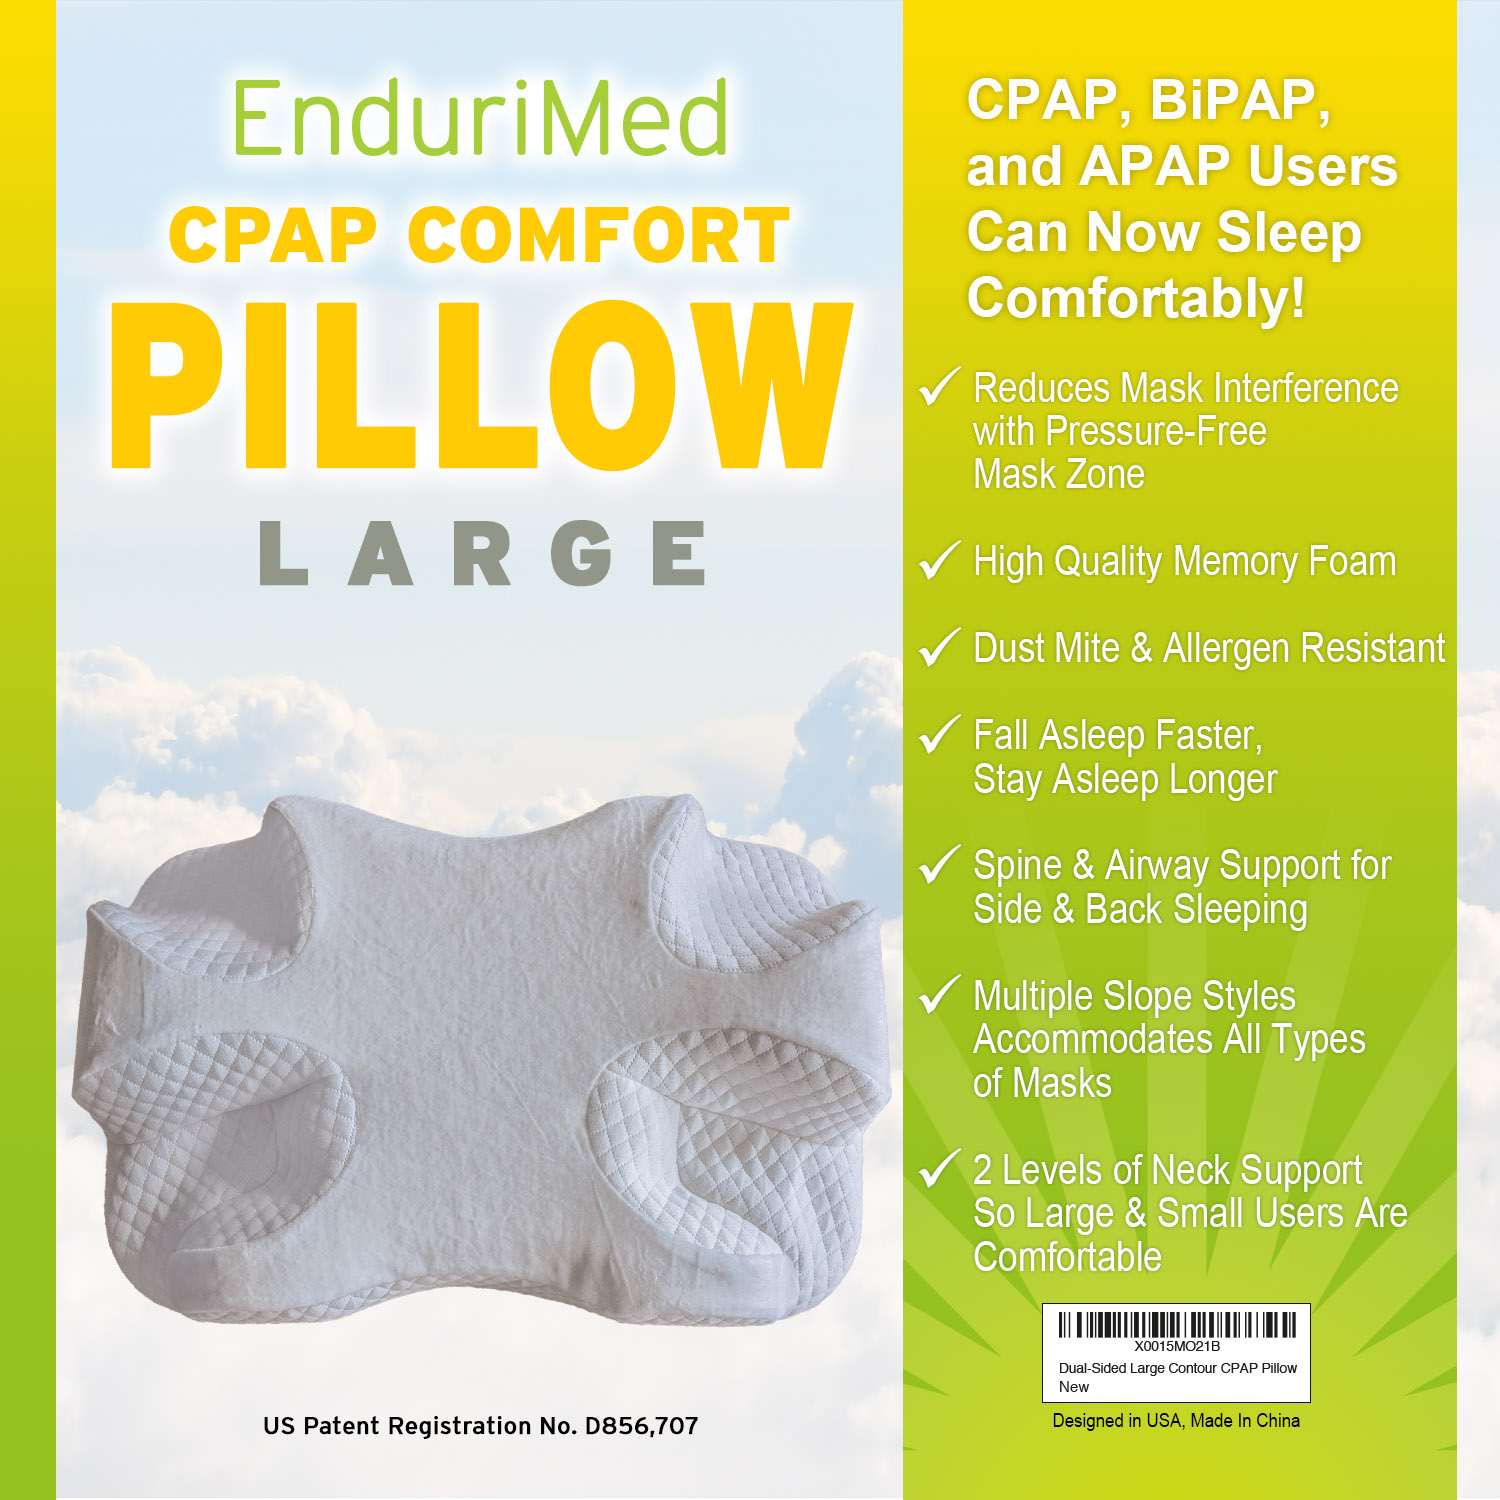 cpap pillow new memory foam contour design reduces face nasal mask pressure air leaks 2 head neck rests for spine alignment comfort cpap